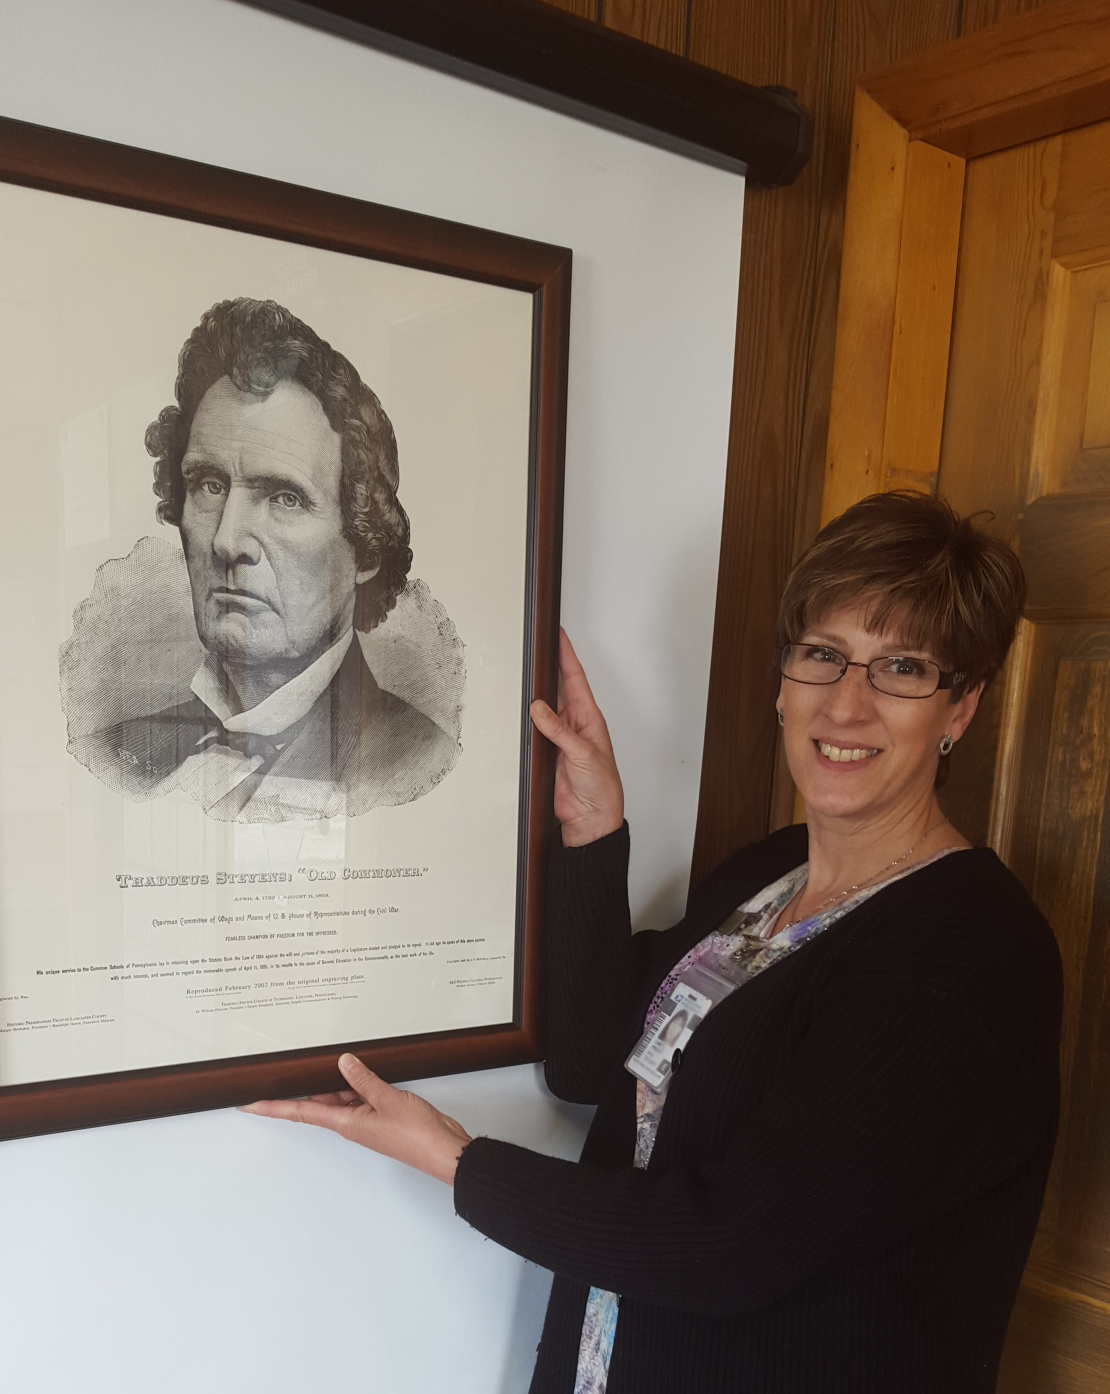 Lindi Pronto, Danville postmaster, holds the Thaddeus Stevens portrait that hangs in the Danville, VT, post office. Last year, the post office was named for Thaddeus Stevens.